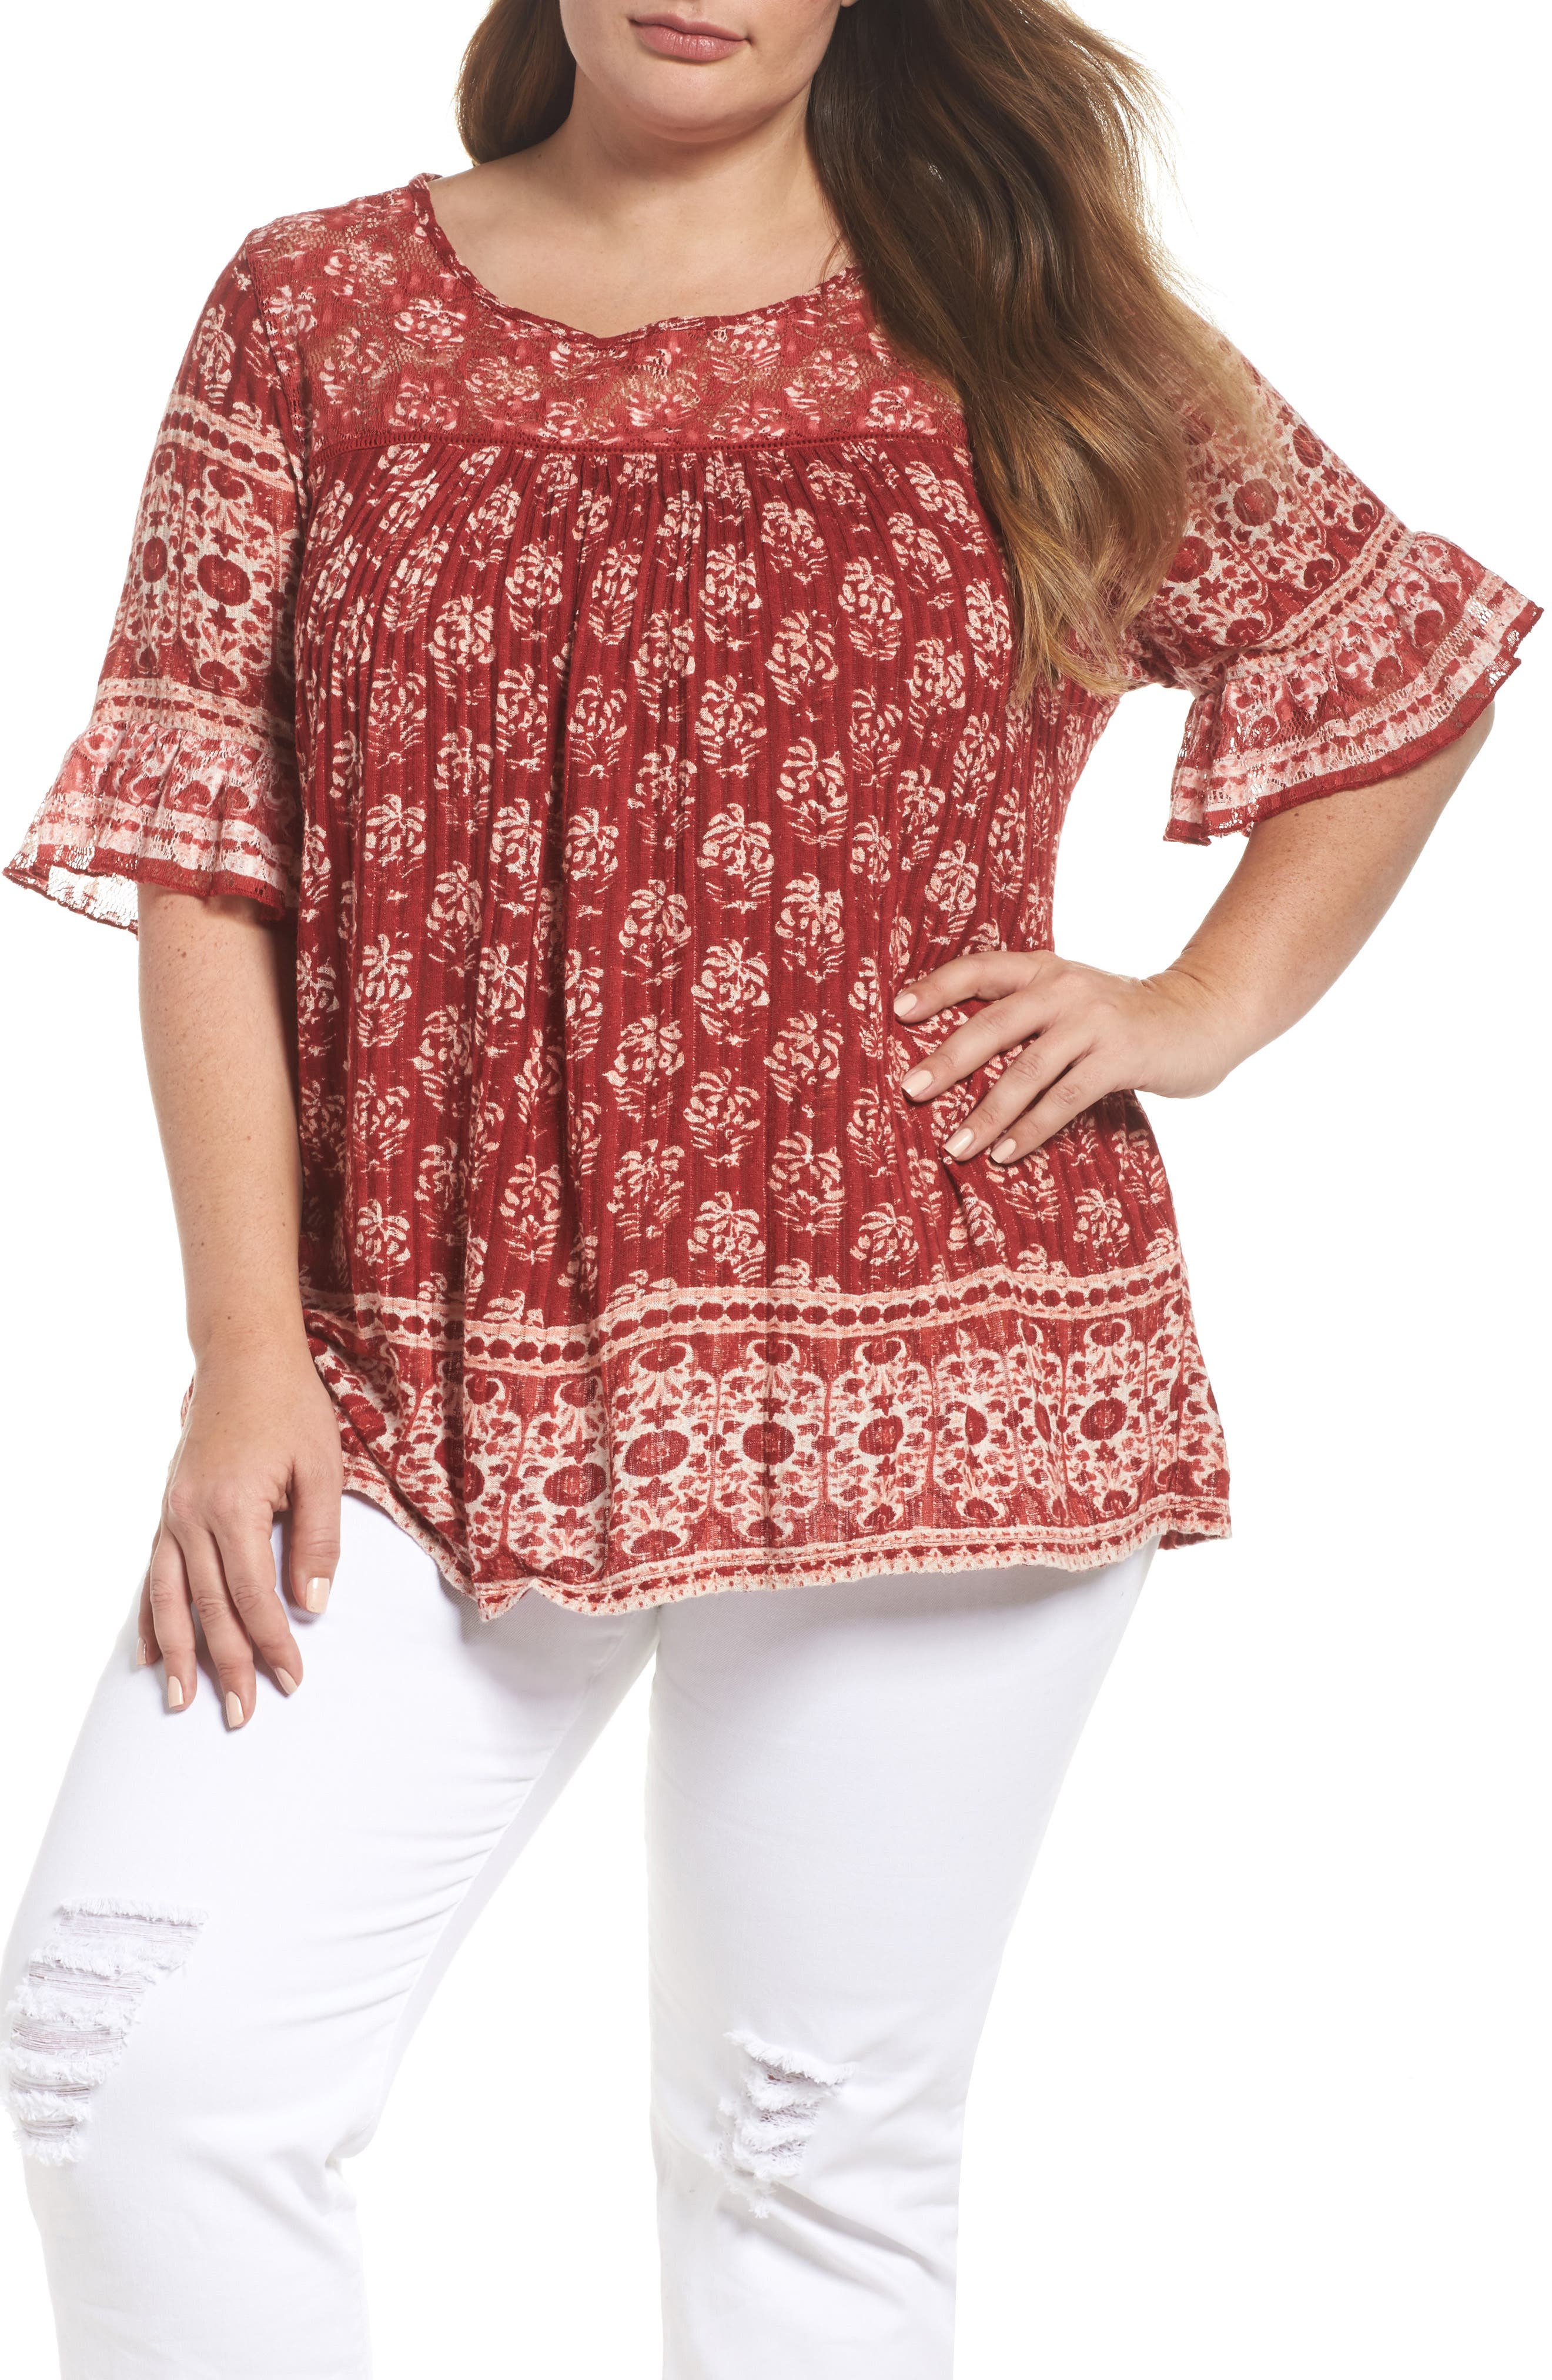 Main Image - Lucky Brand Print Top (Plus Size)